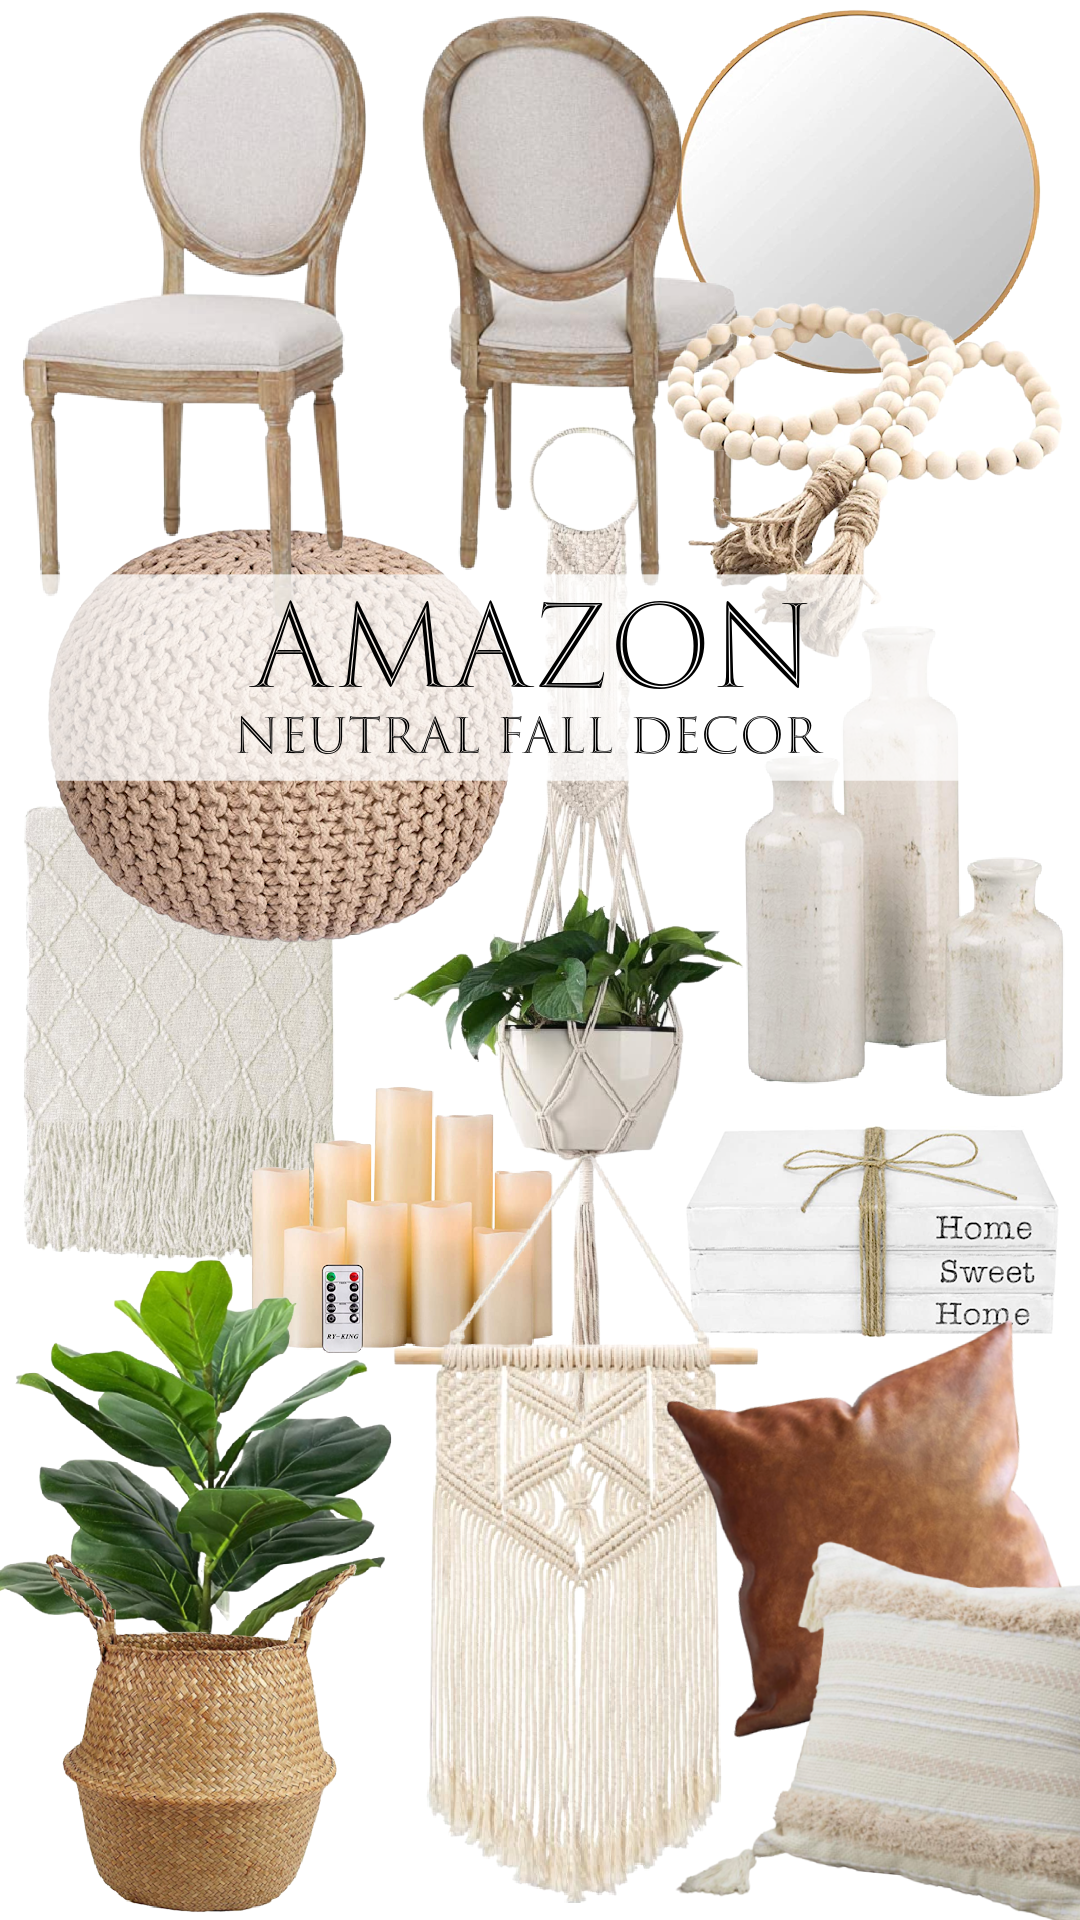 Amazon Neutral Fall Decor